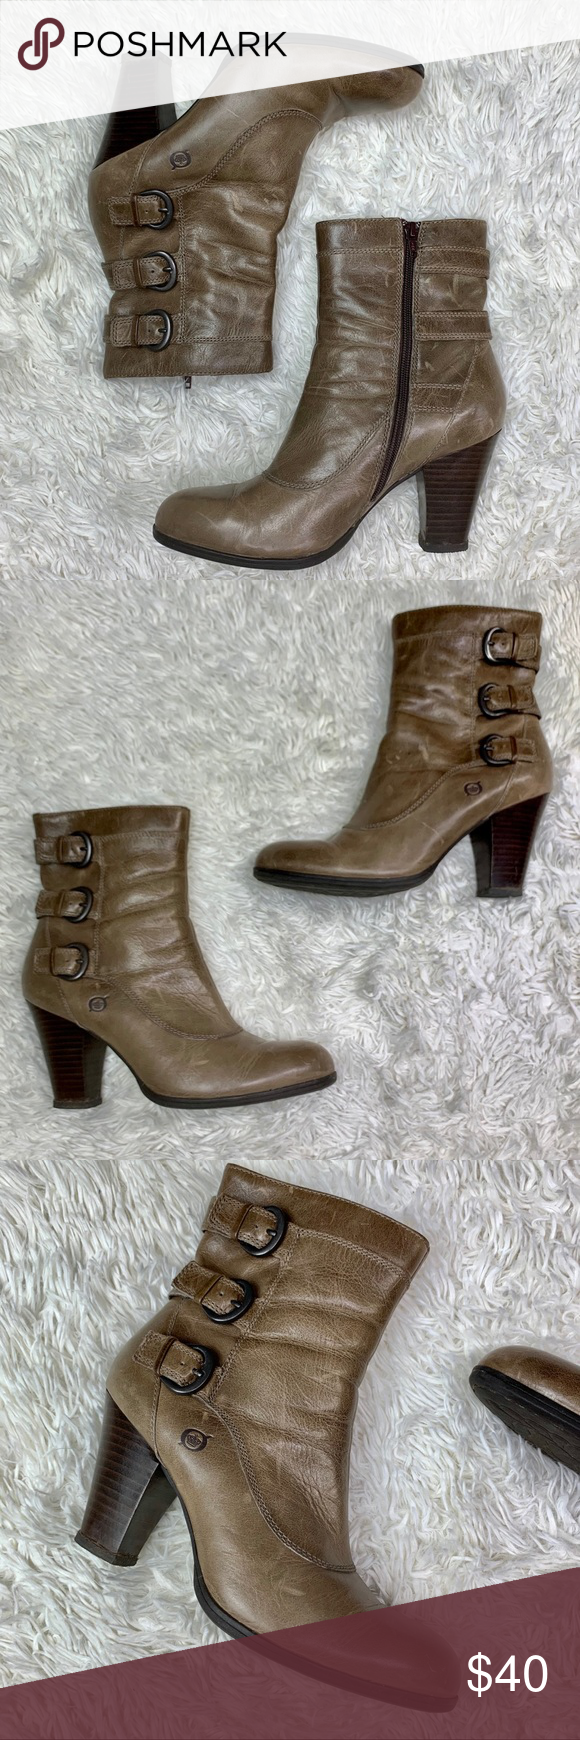 BOGO Born Leather Block Heel Buckle Boot Size 9 Born Leather Block Heel Buckle B…